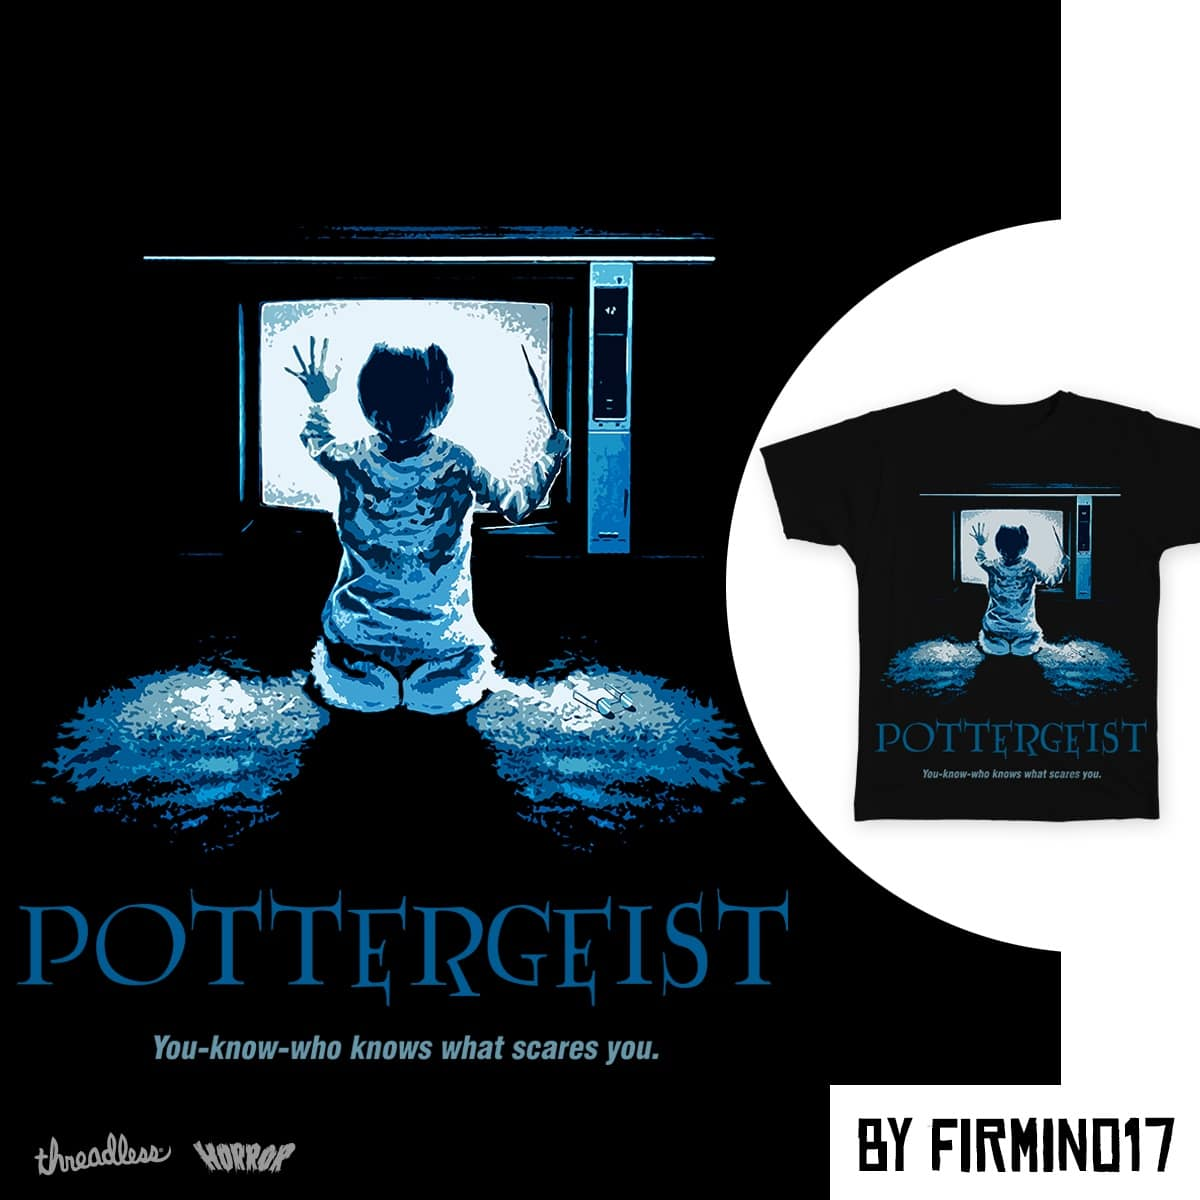 Pottergeist by firmino17 on Threadless